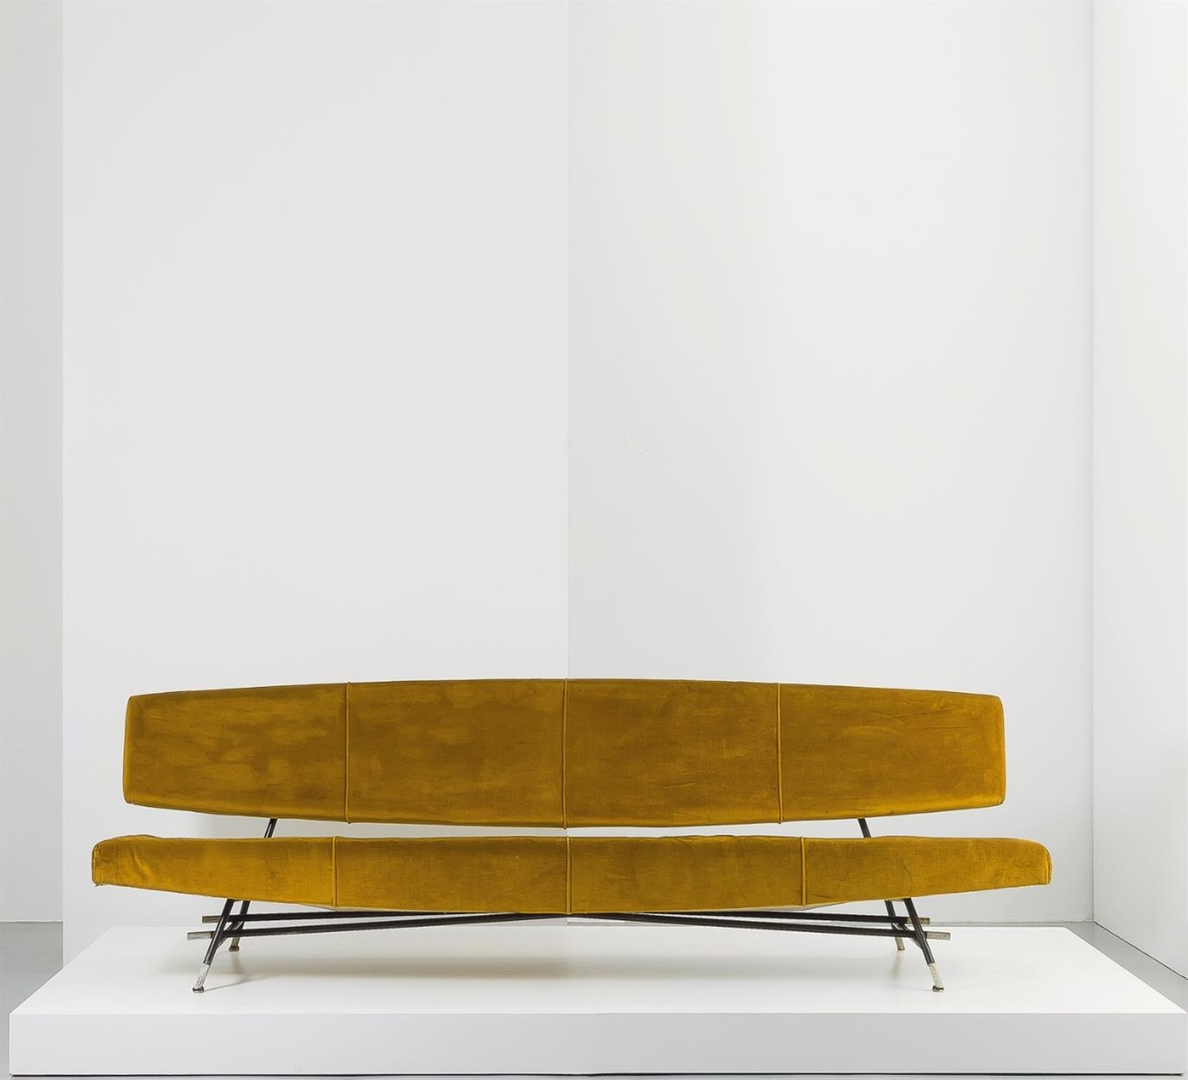 Sofa Mod 865 by Ico Parisi 1955 at Gate 5 Gallery courtesy of Gate 5 Gallery (Copy)